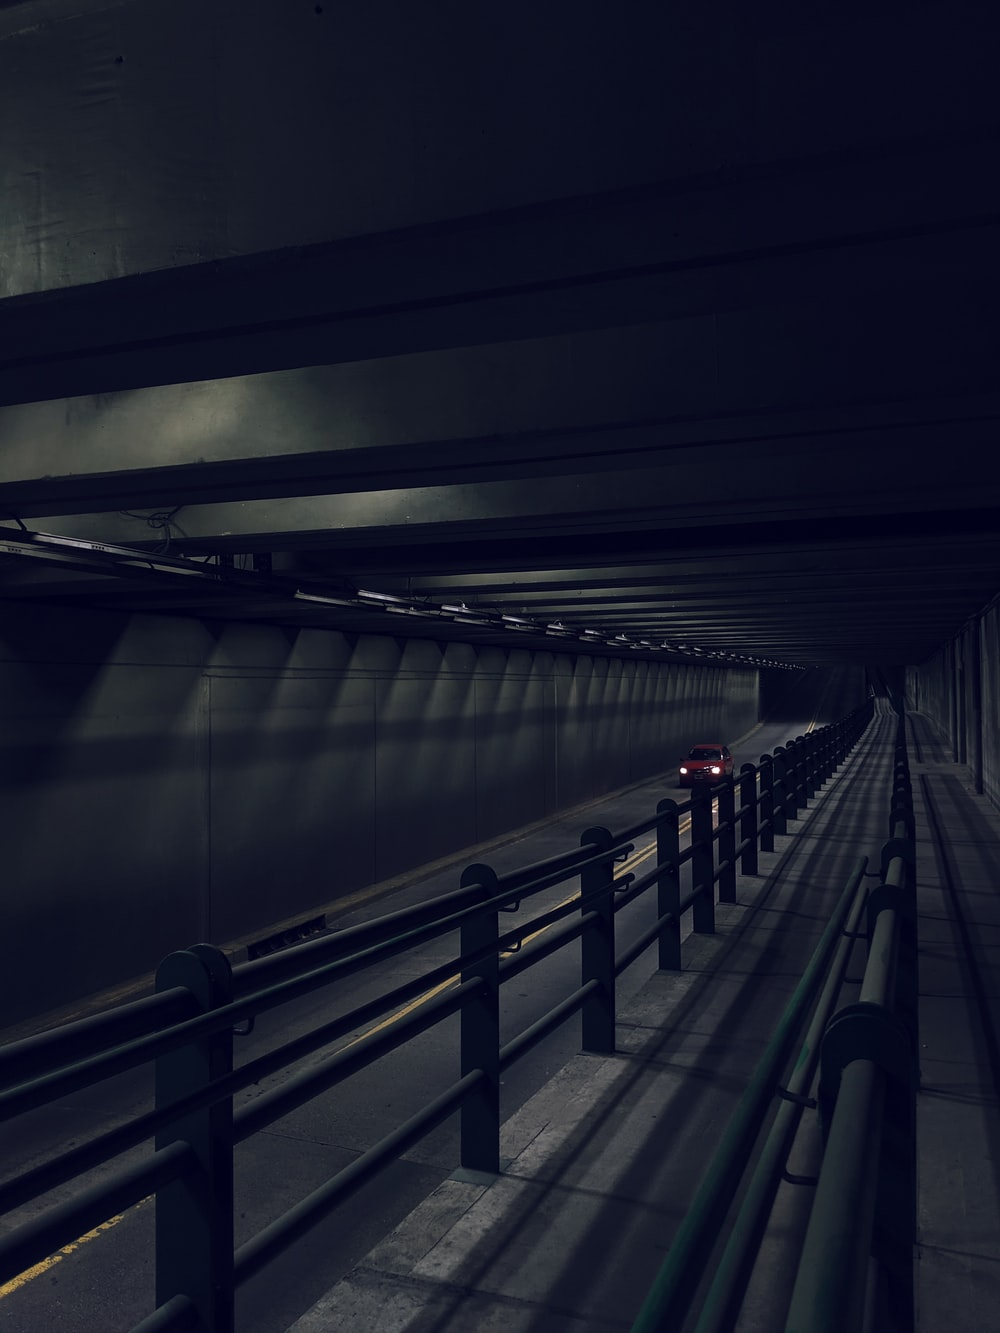 white and black train in tunnel